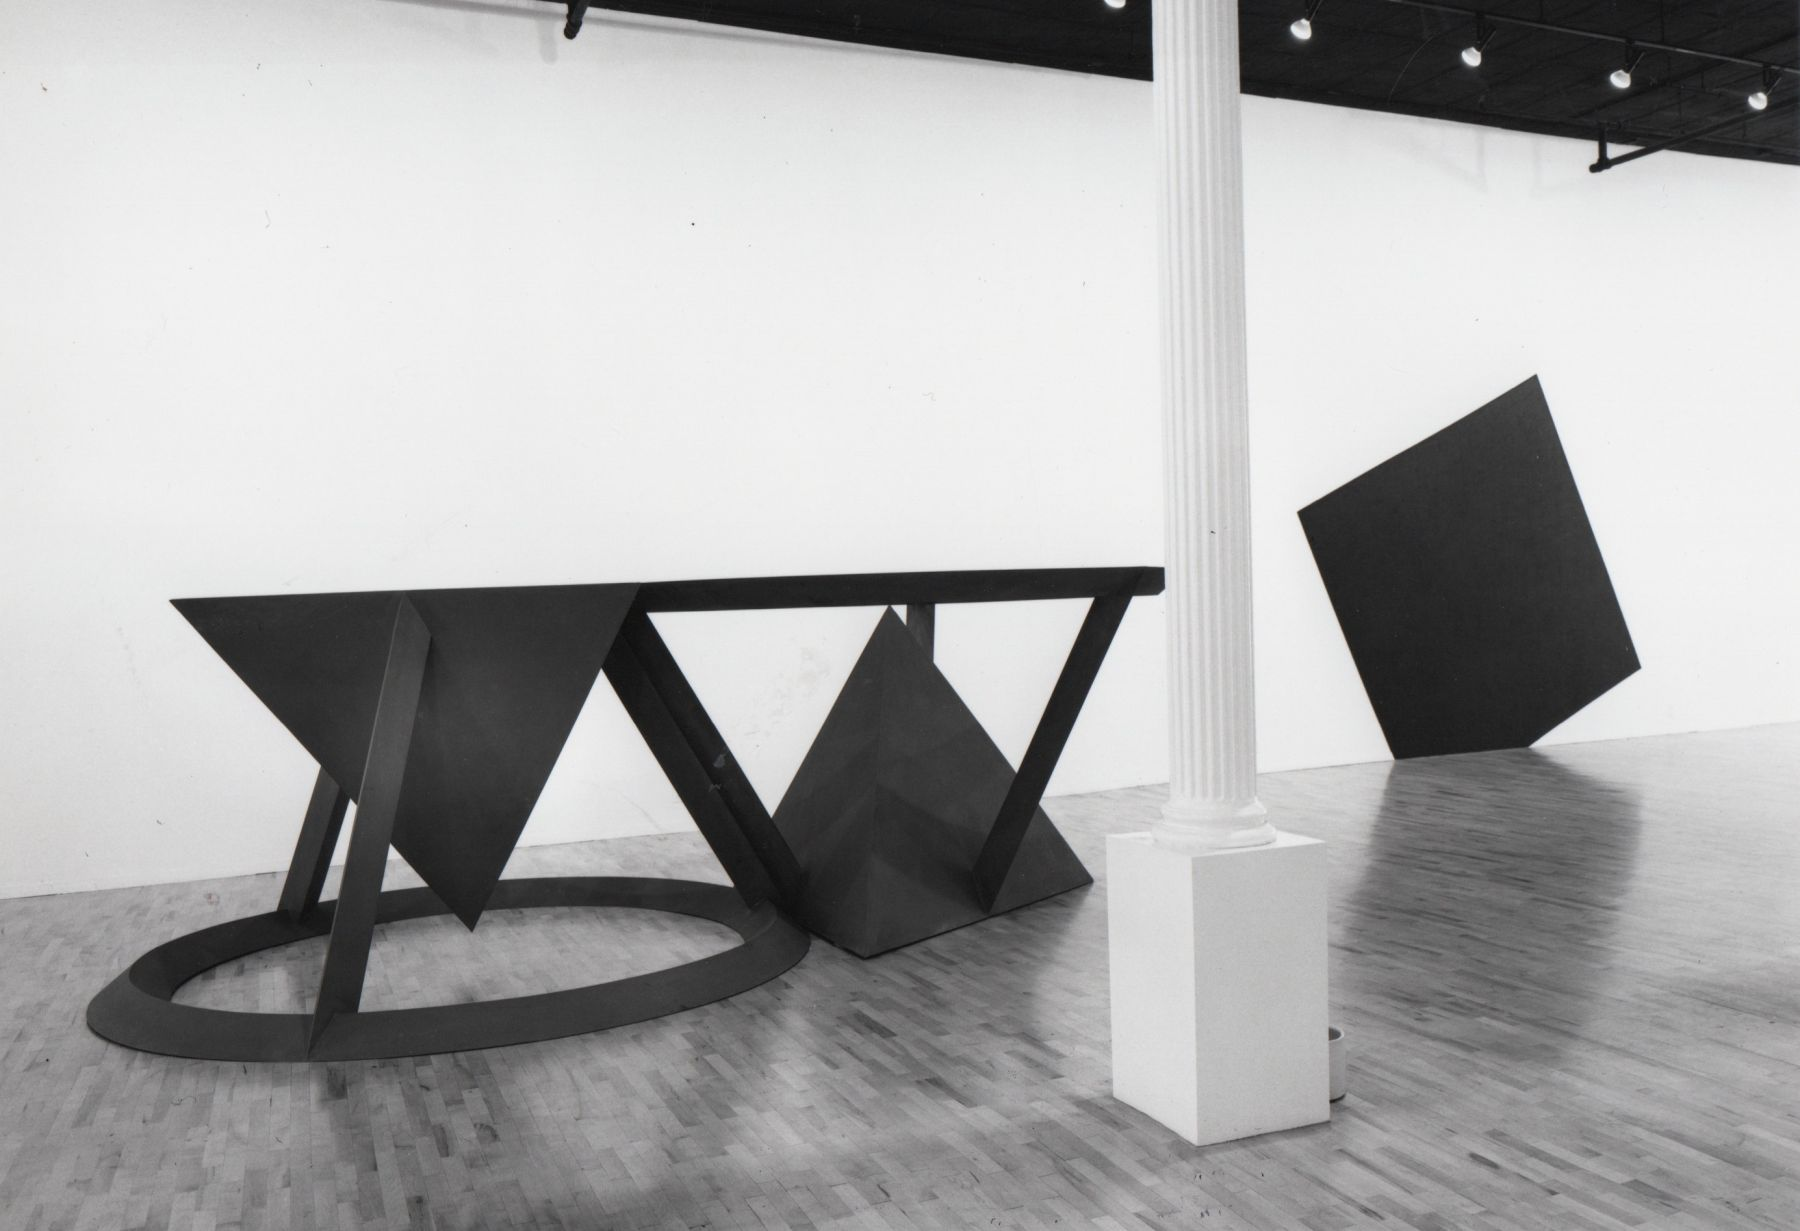 Installation view, Group Show, 142 GREENE.